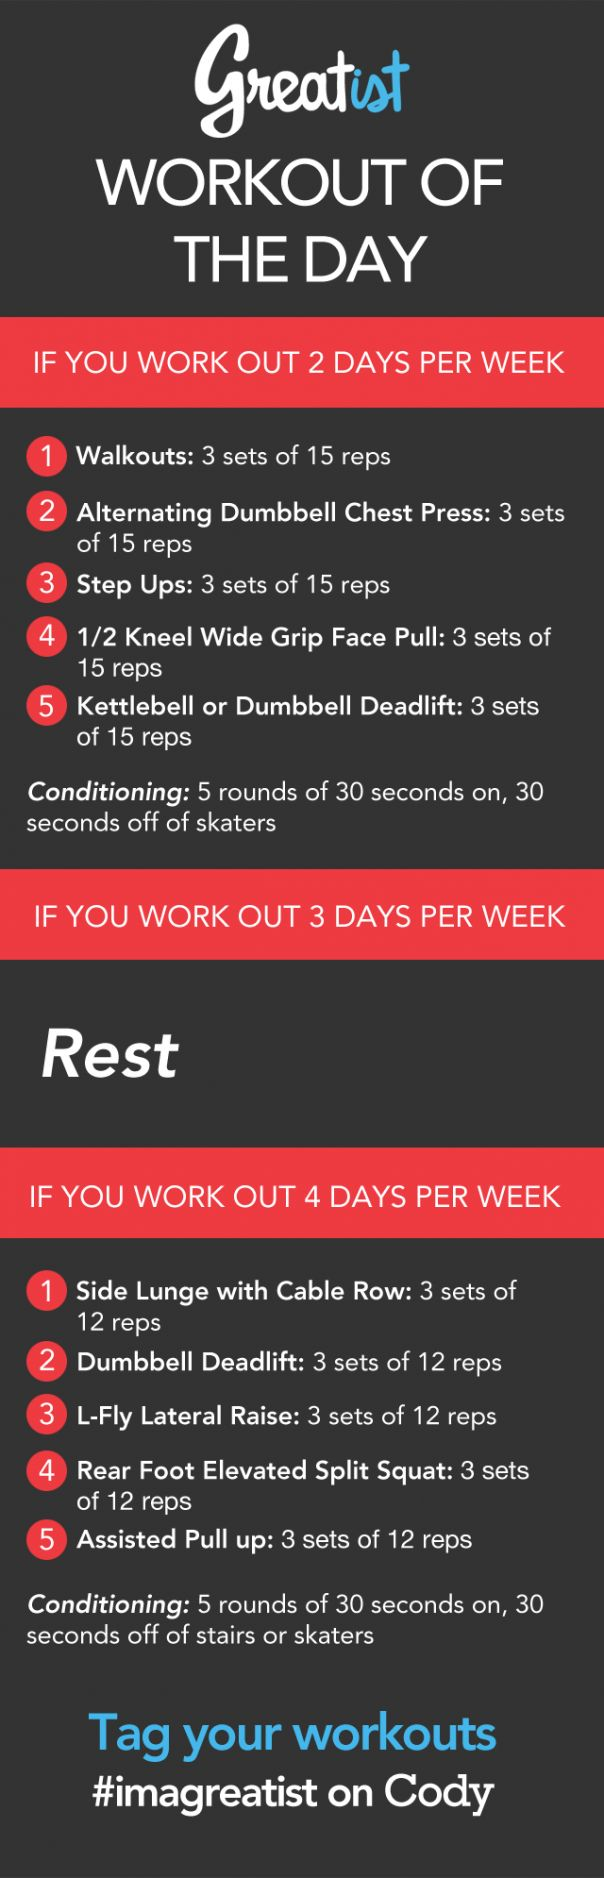 Workout of the Day: Thursday Aug. 29